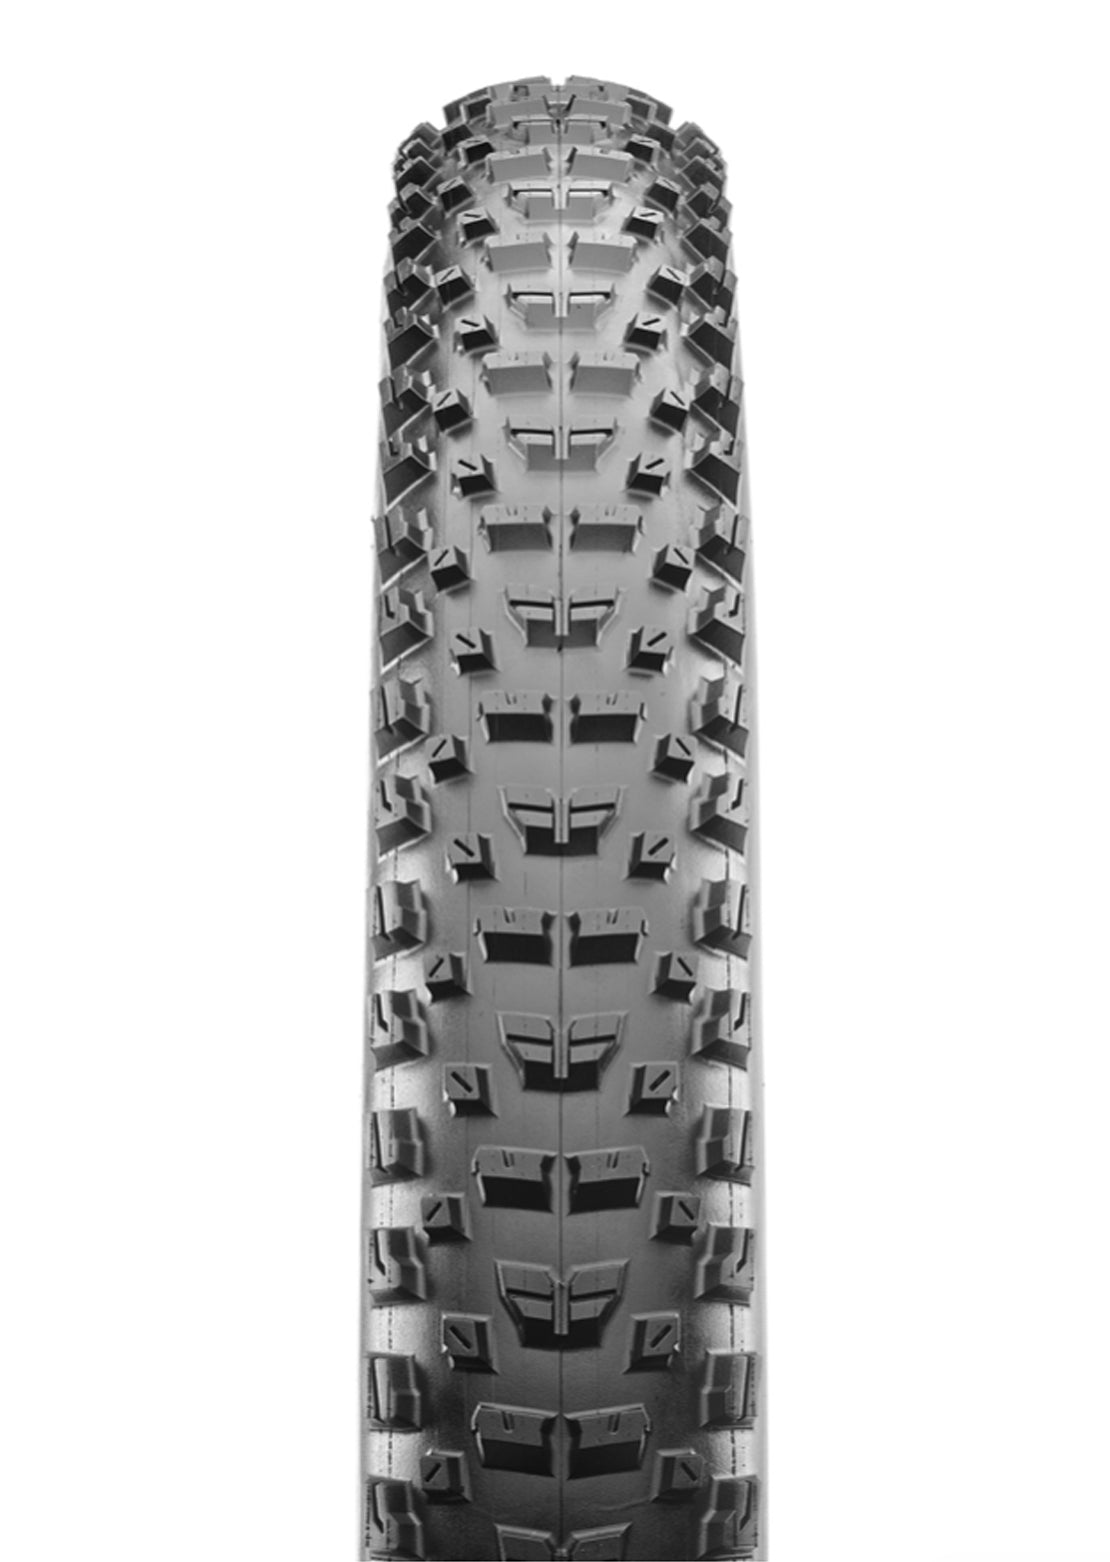 Maxxis Mountain Rekon+ 27.5 '' x 2.8 Mountain Bike Tires